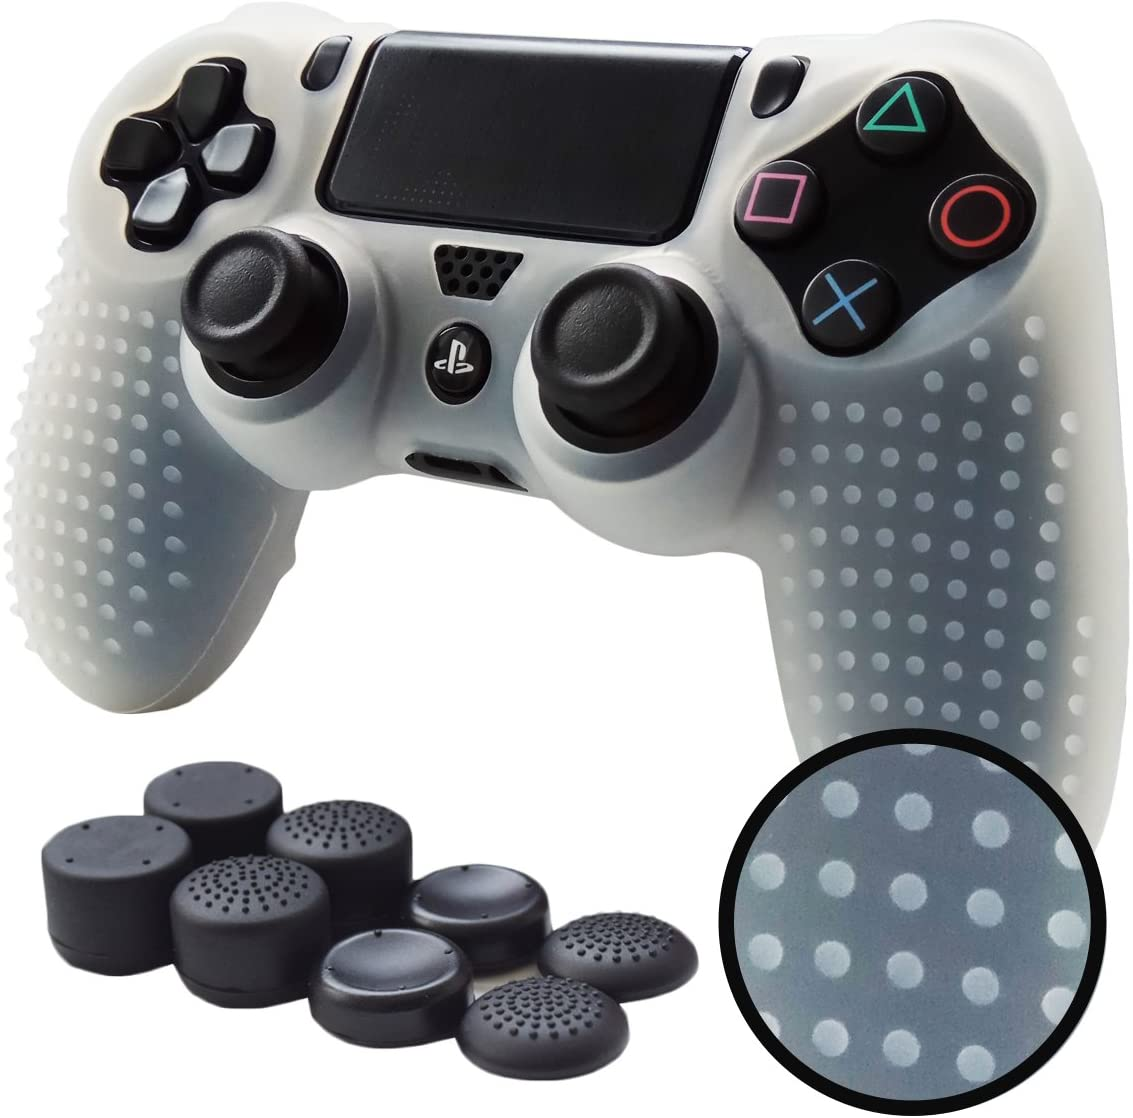 PS4 Controller Grips,Pandaren Studded Anti-Slip Silicone Cover Skin Set Compatible for PS4 /Slim/PRO Controller(White Controller Skin x 1 + FPS PRO Thumb Grips x 8)